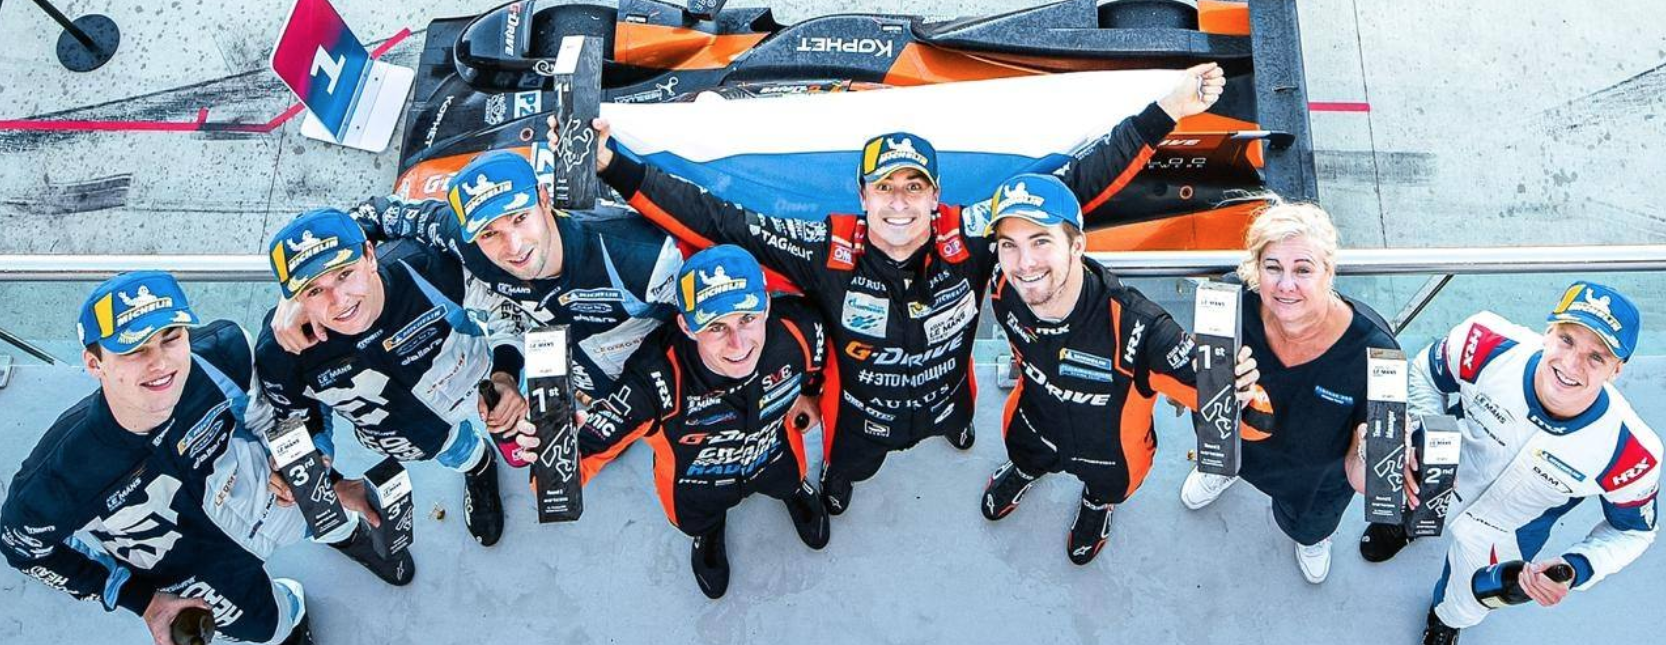 Das russische Team G-Drive Racing gewann den Meisterschaftstitel in der Asian Le Mans Series